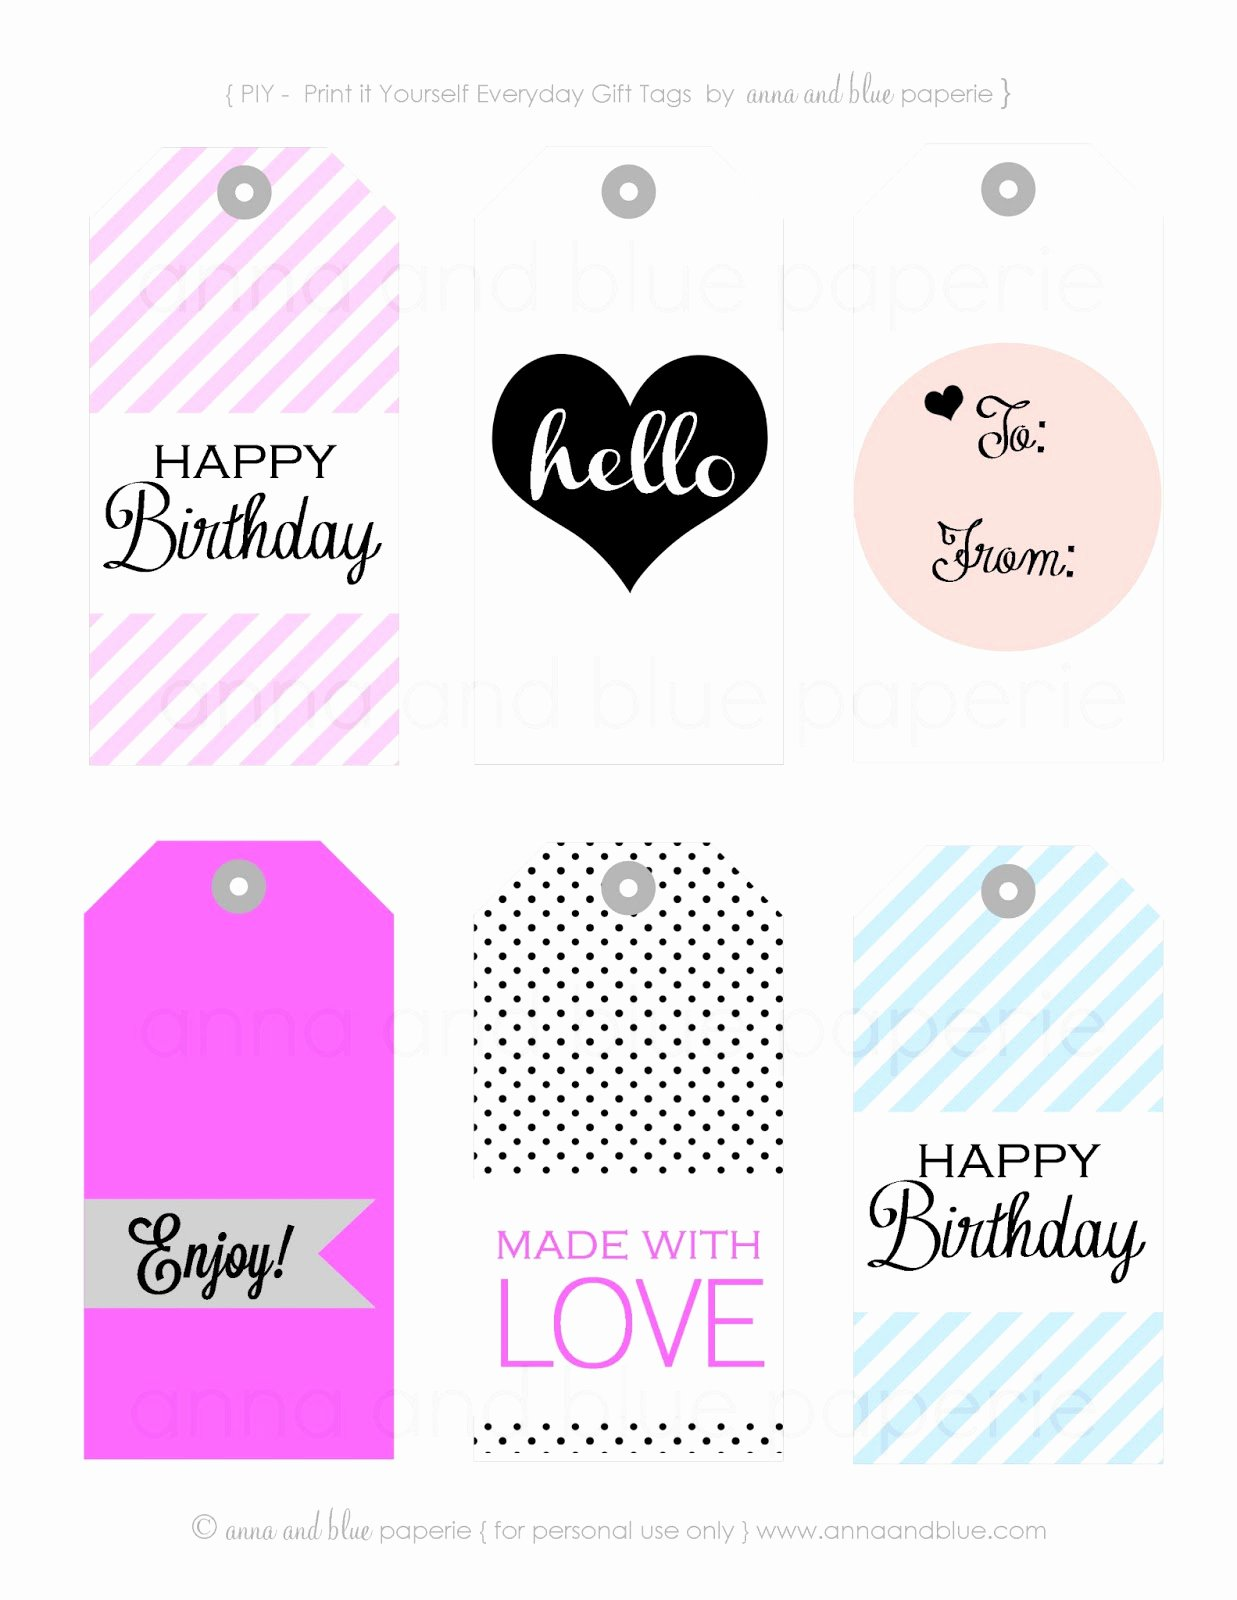 Printable Birthday Gift Tags Lovely Anna and Blue Paperie Gift Tags Free Printable